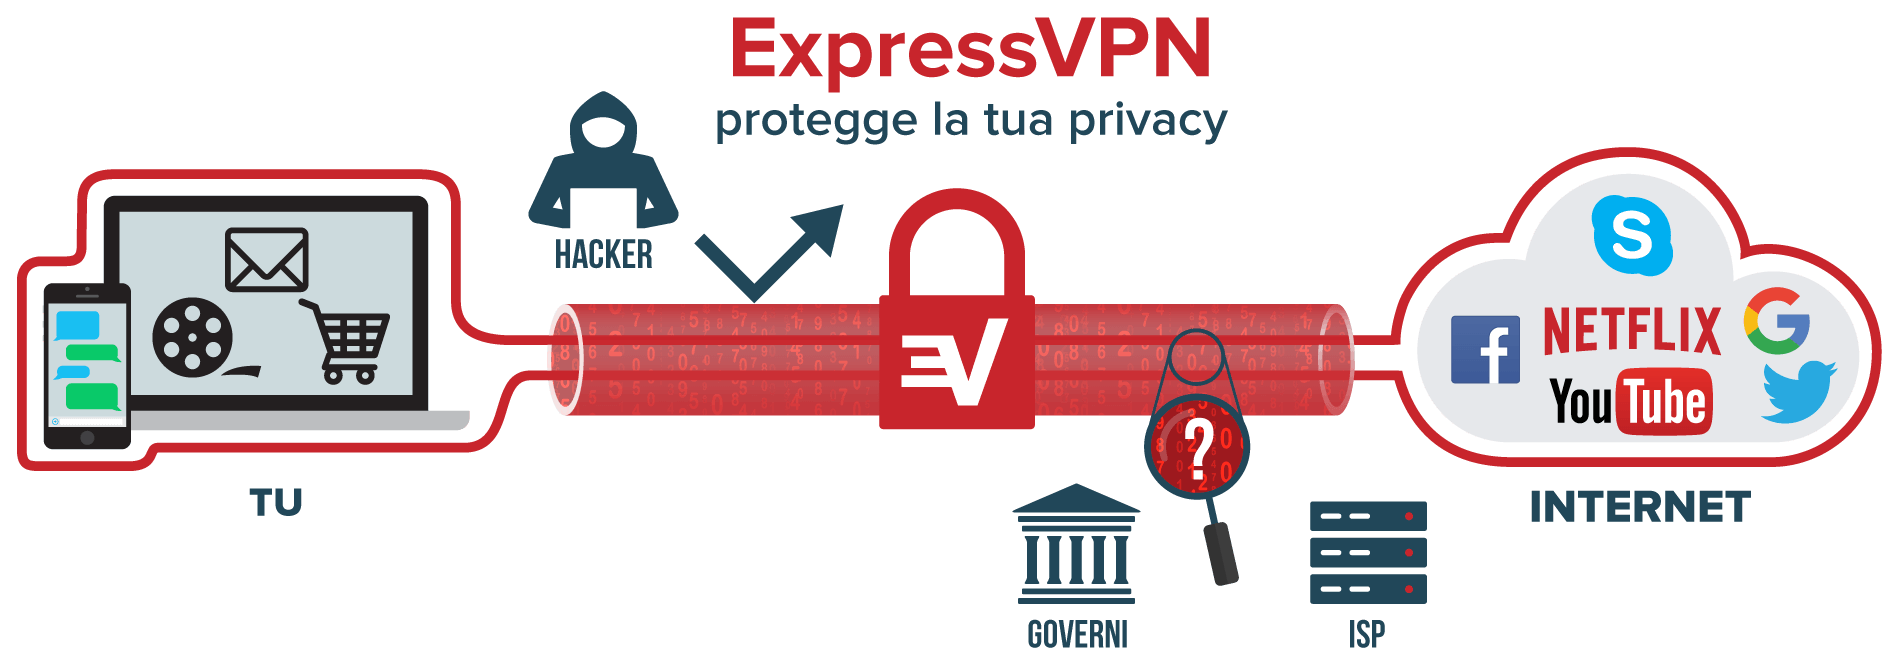 ExpressVPN protegge la tua privacy mentre utilizzi Fire TV